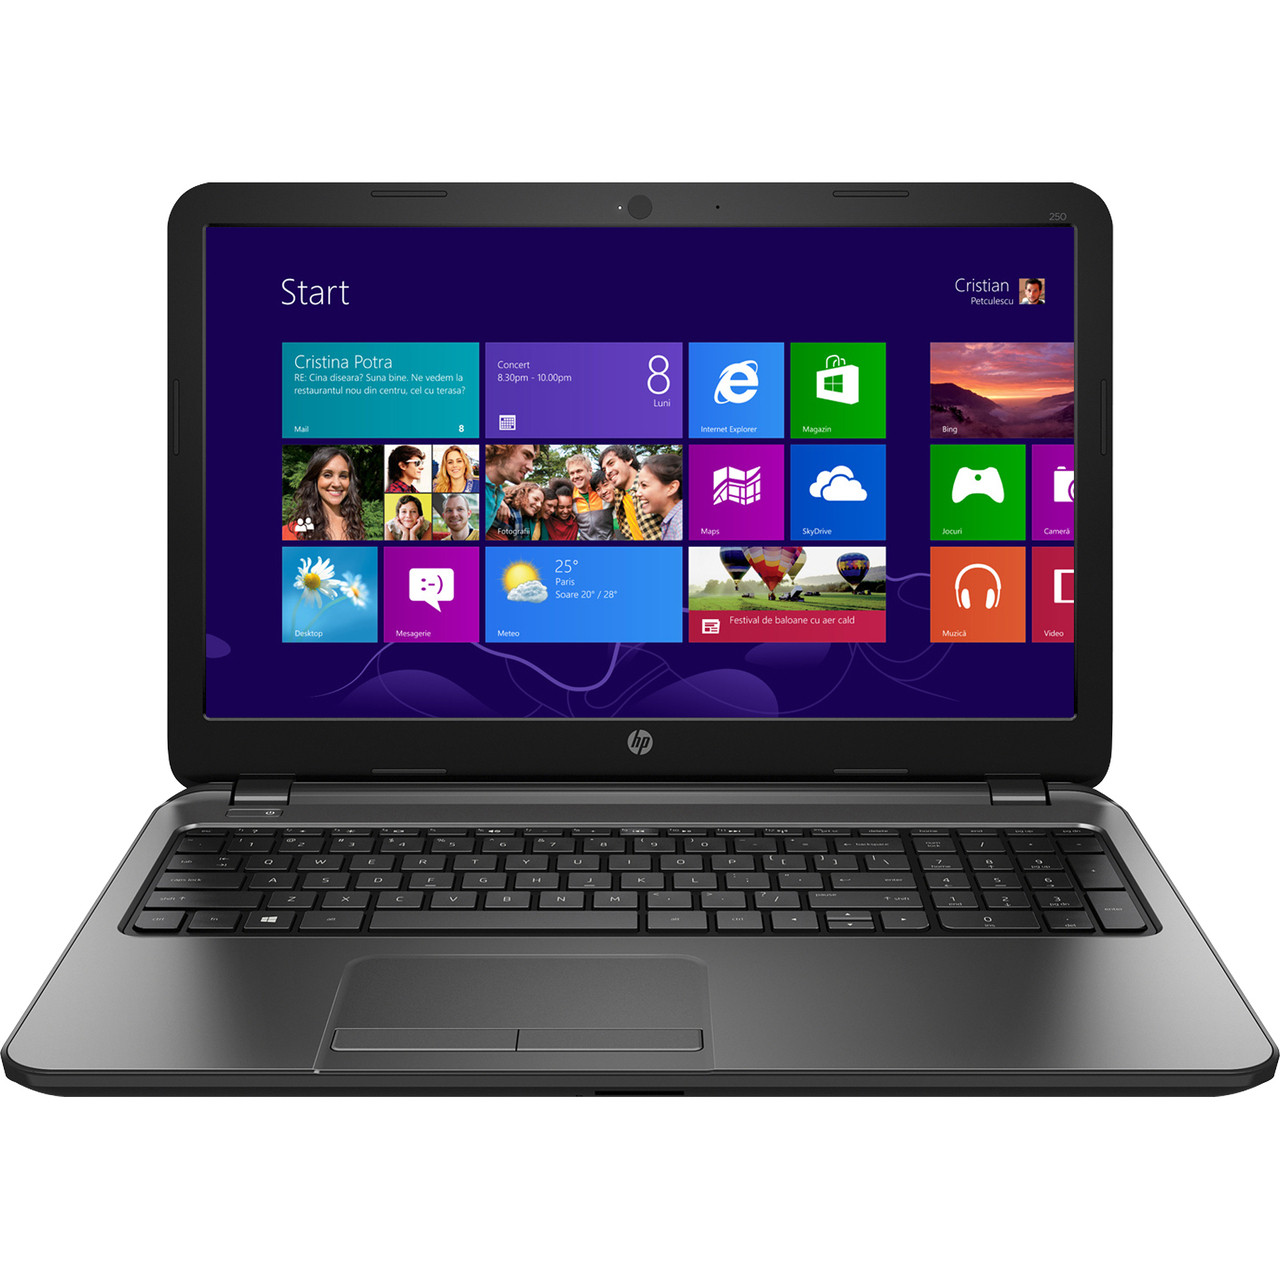 Hp notebook for sale - Hp 250 G2 Notebook Pc Intel Core I3 3110m Configure To Order Front